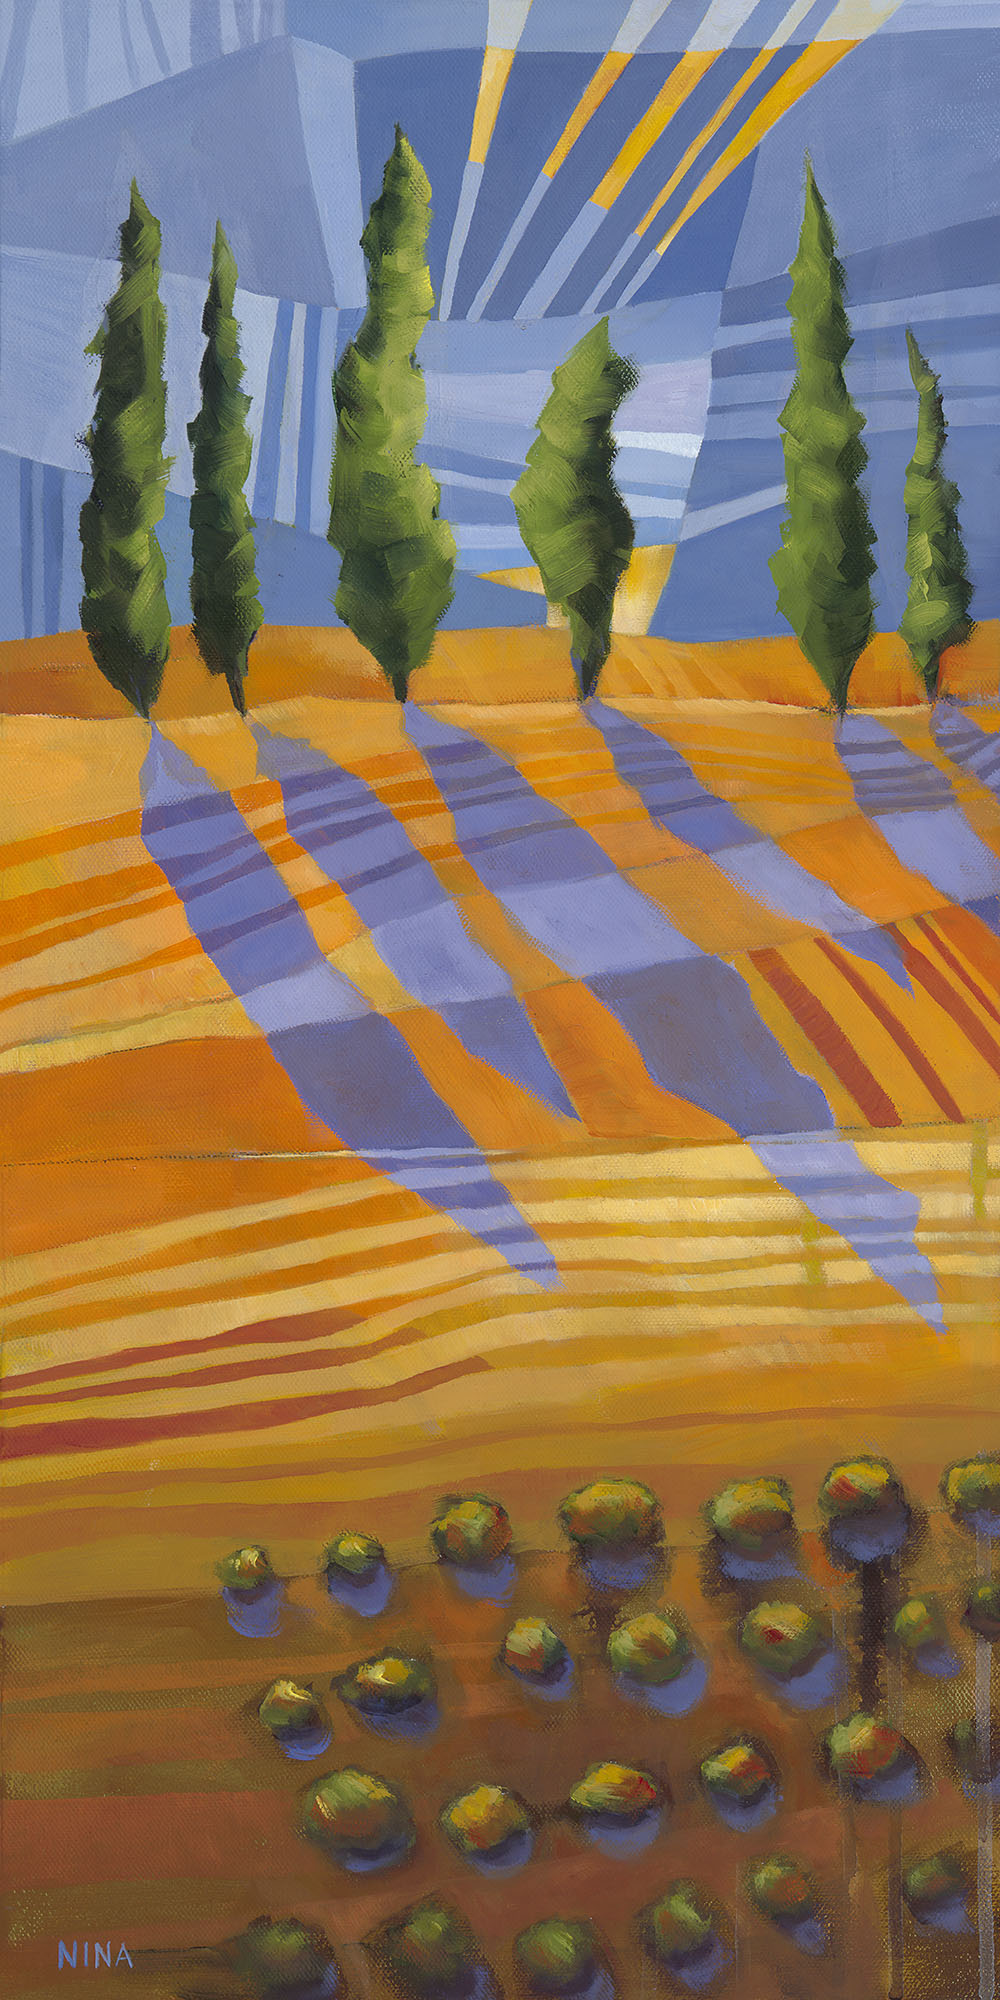 Painting of trees on orange striped fields.